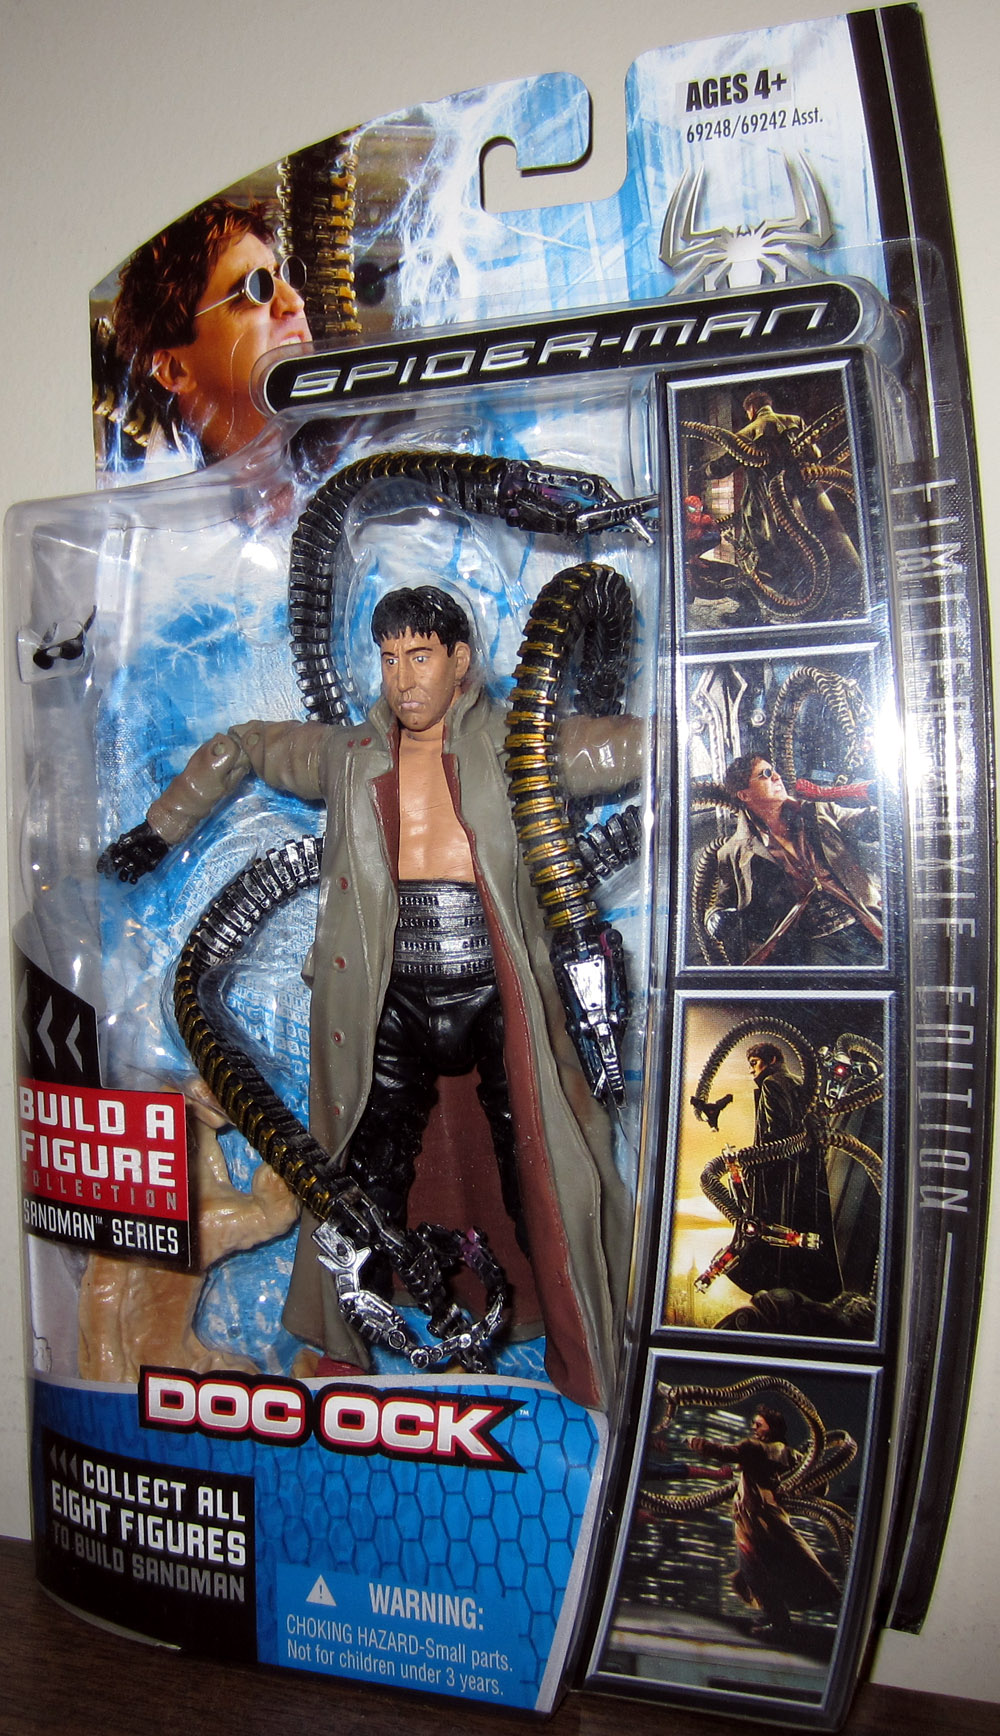 Doc Ock (Build A Figure Sandman Series)